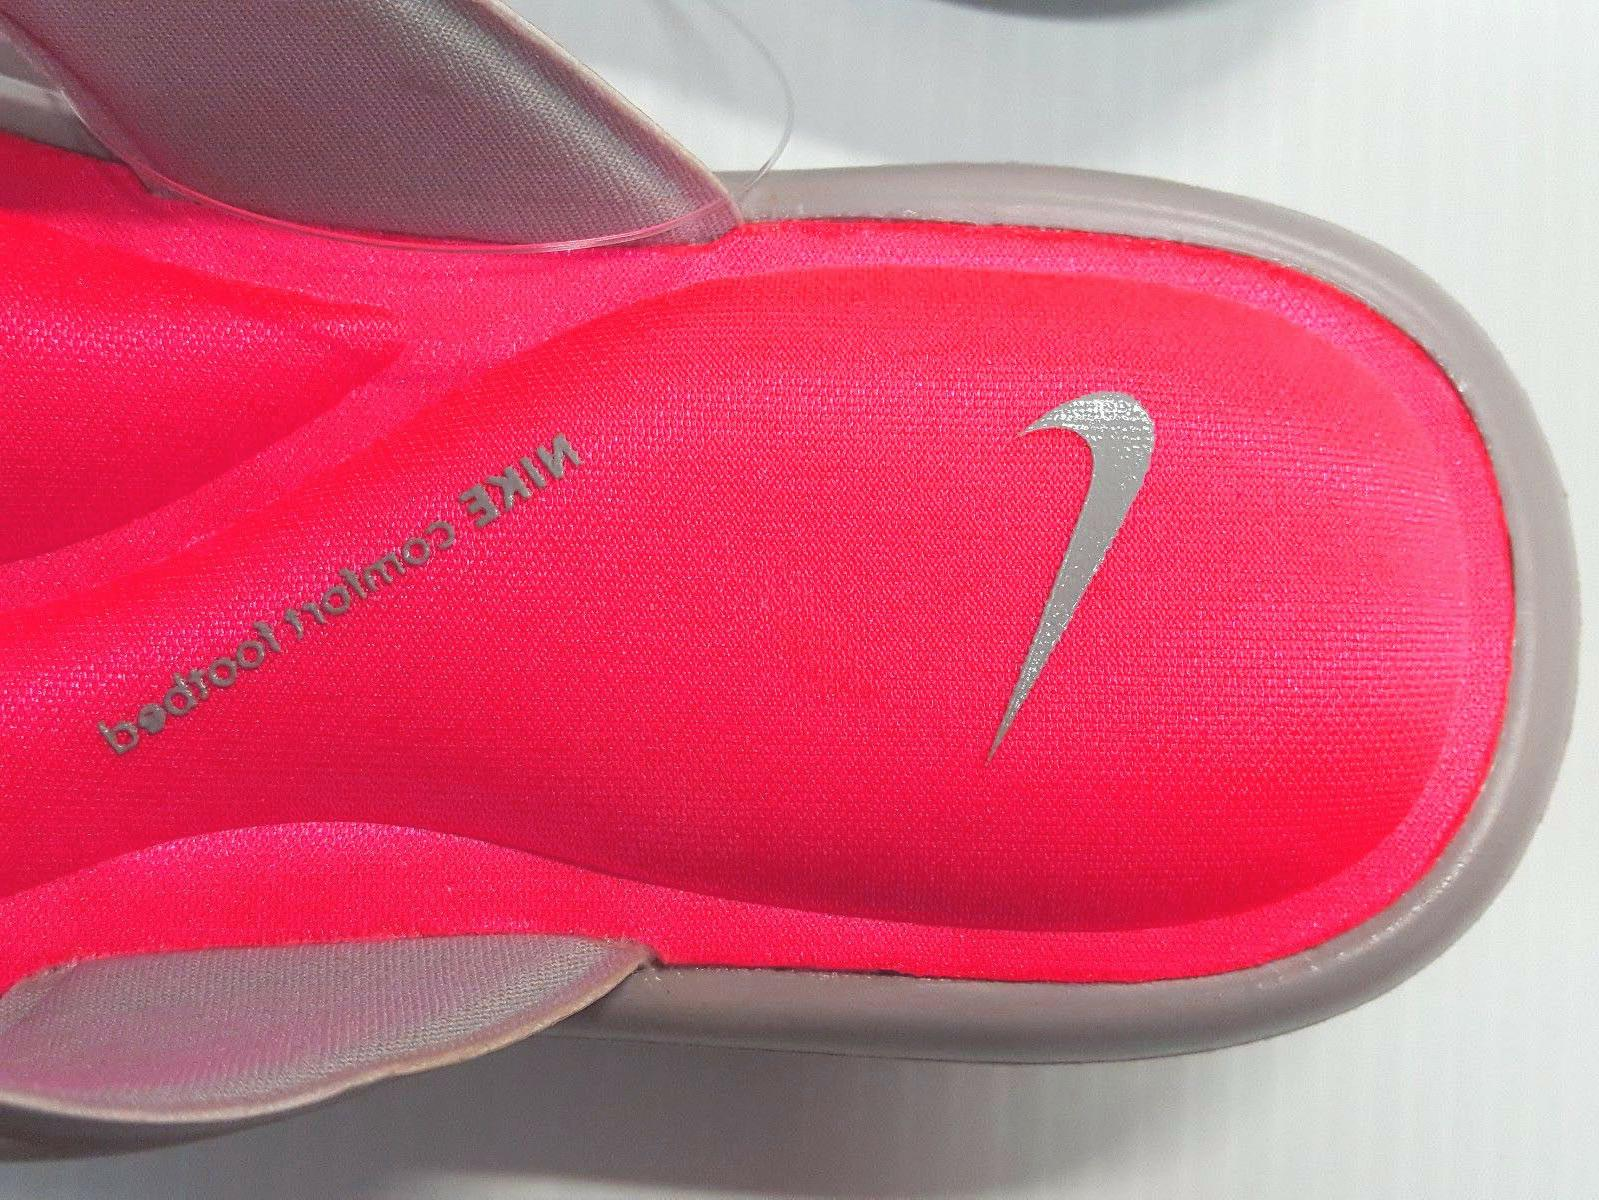 Nike Thong Sandals, Size 6,7,8,9,10